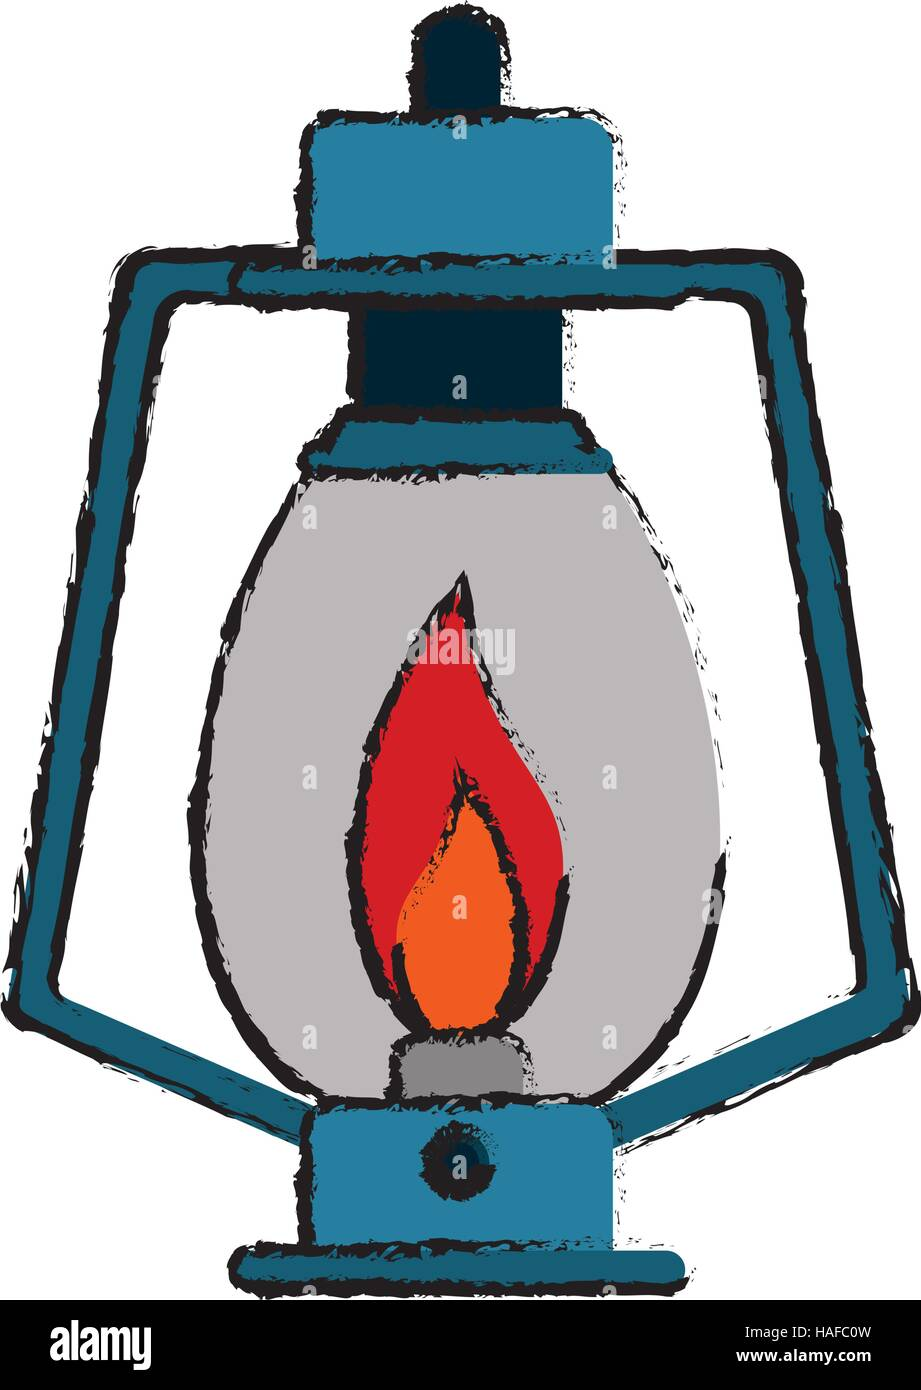 Drawing Lamp Kerosene Old Lantern High Resolution Stock Photography And Images Alamy